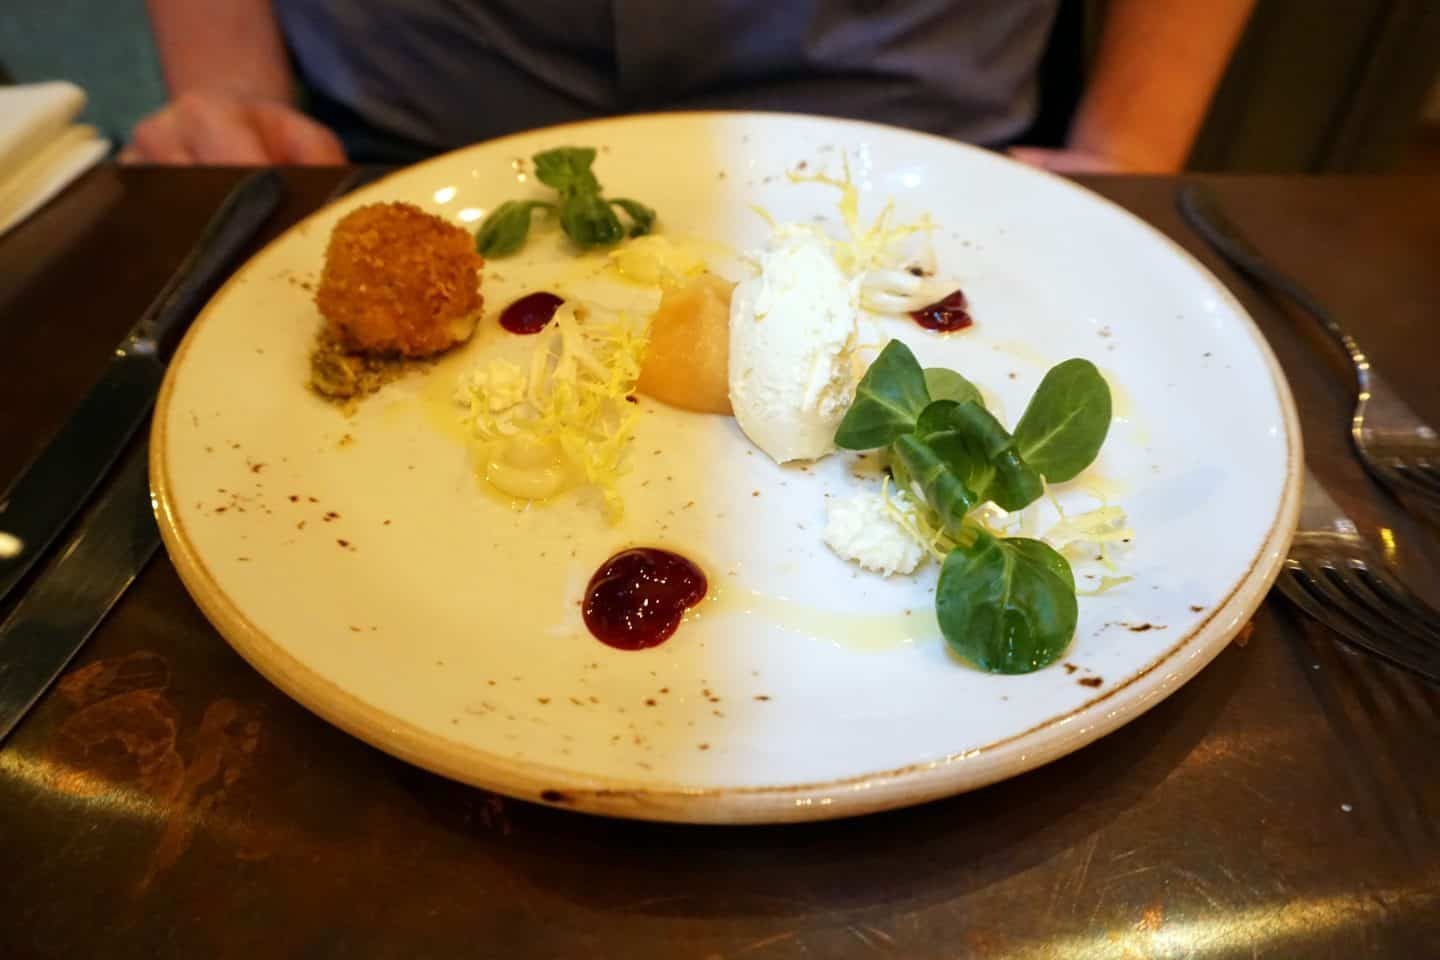 skyfall hove restaurant review